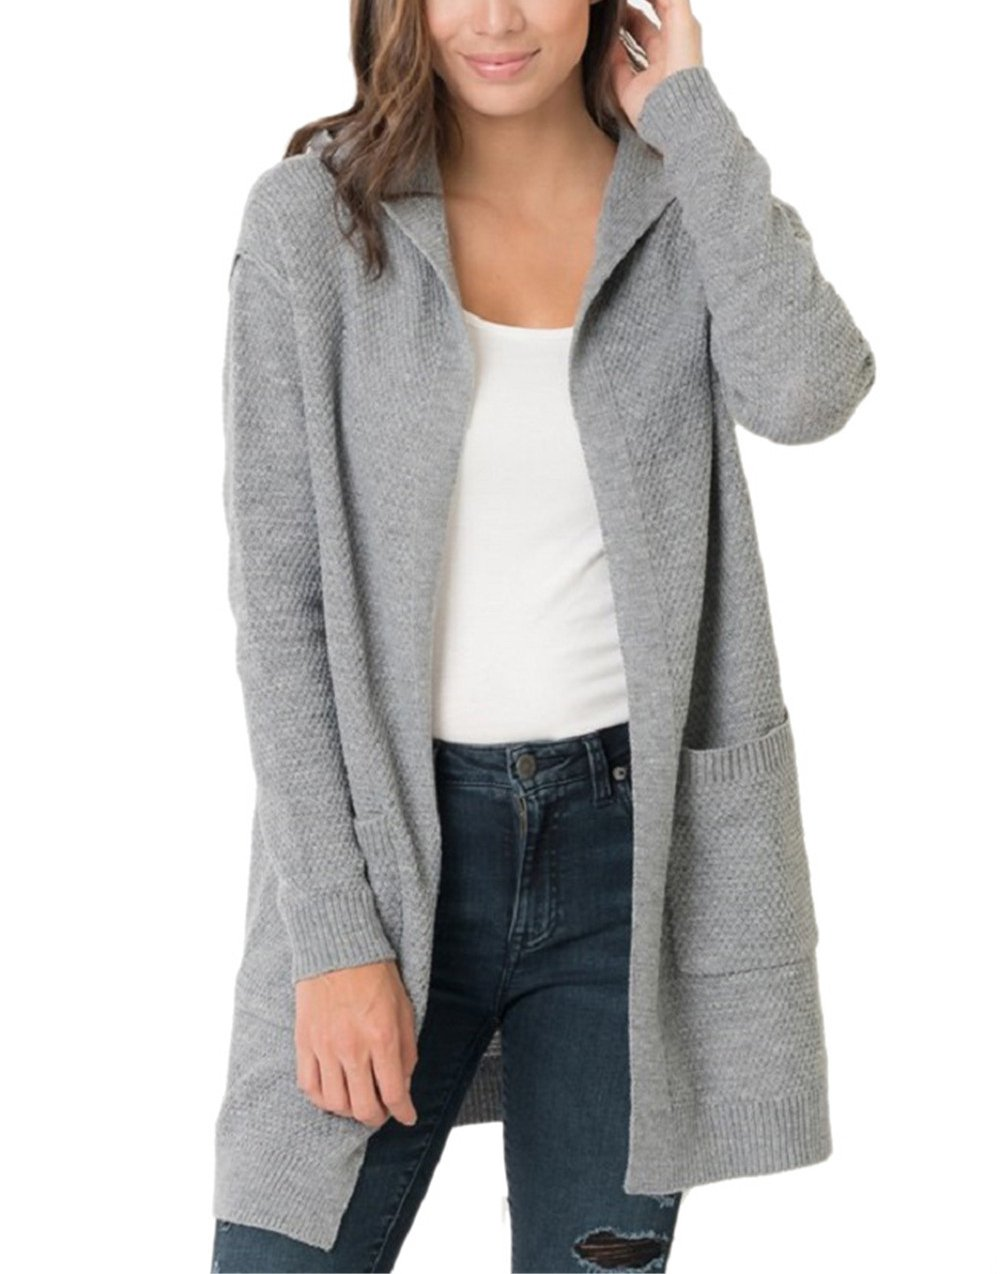 Imysty Womens Oversized Sweater Cardigans Open Front Hooded Knit Outwear with Pockets